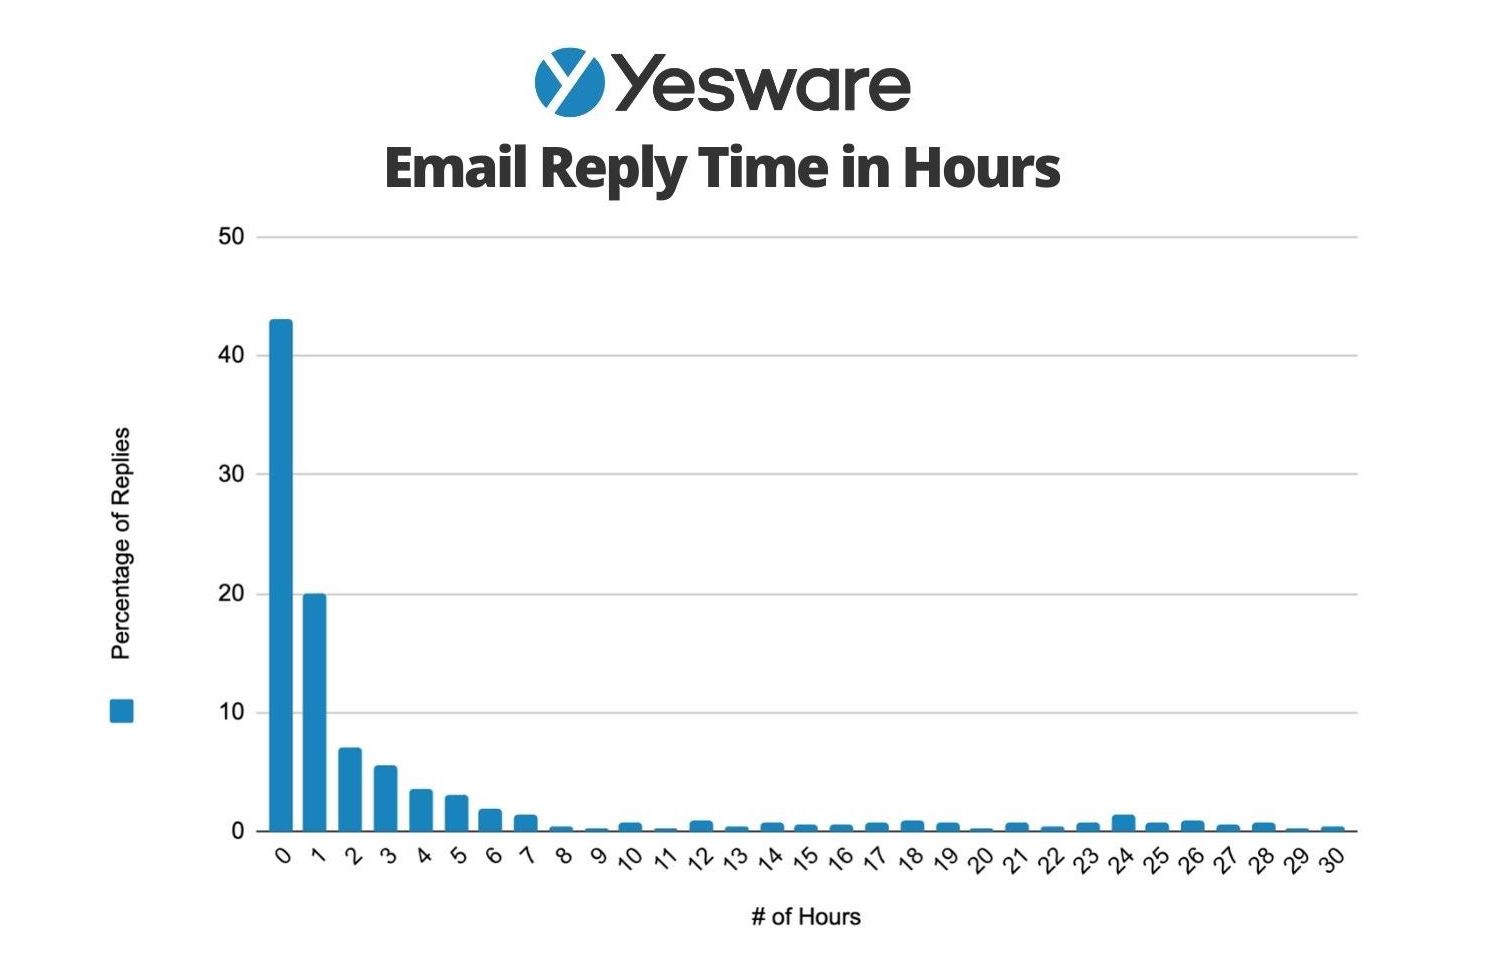 Best time to send email: Email Reply Time in Hours